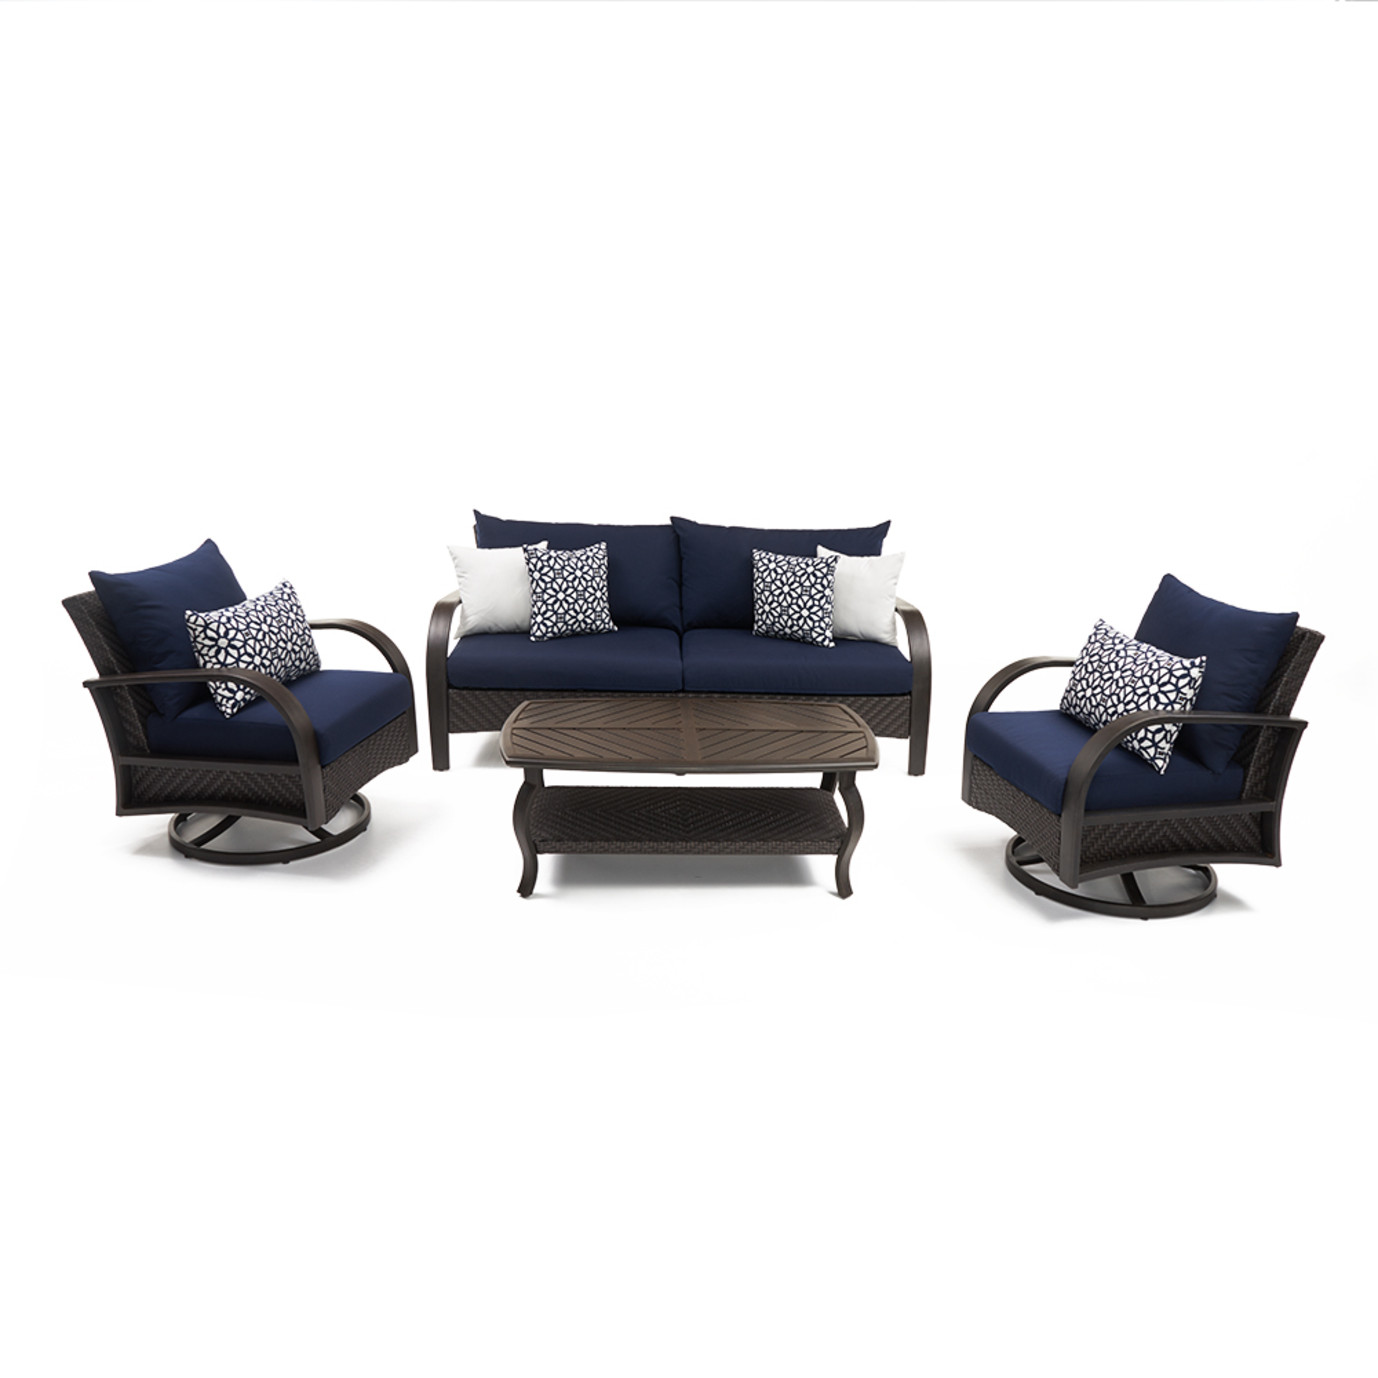 Barcelo™ 4pc Motion Club & Sofa Set - Navy Blue